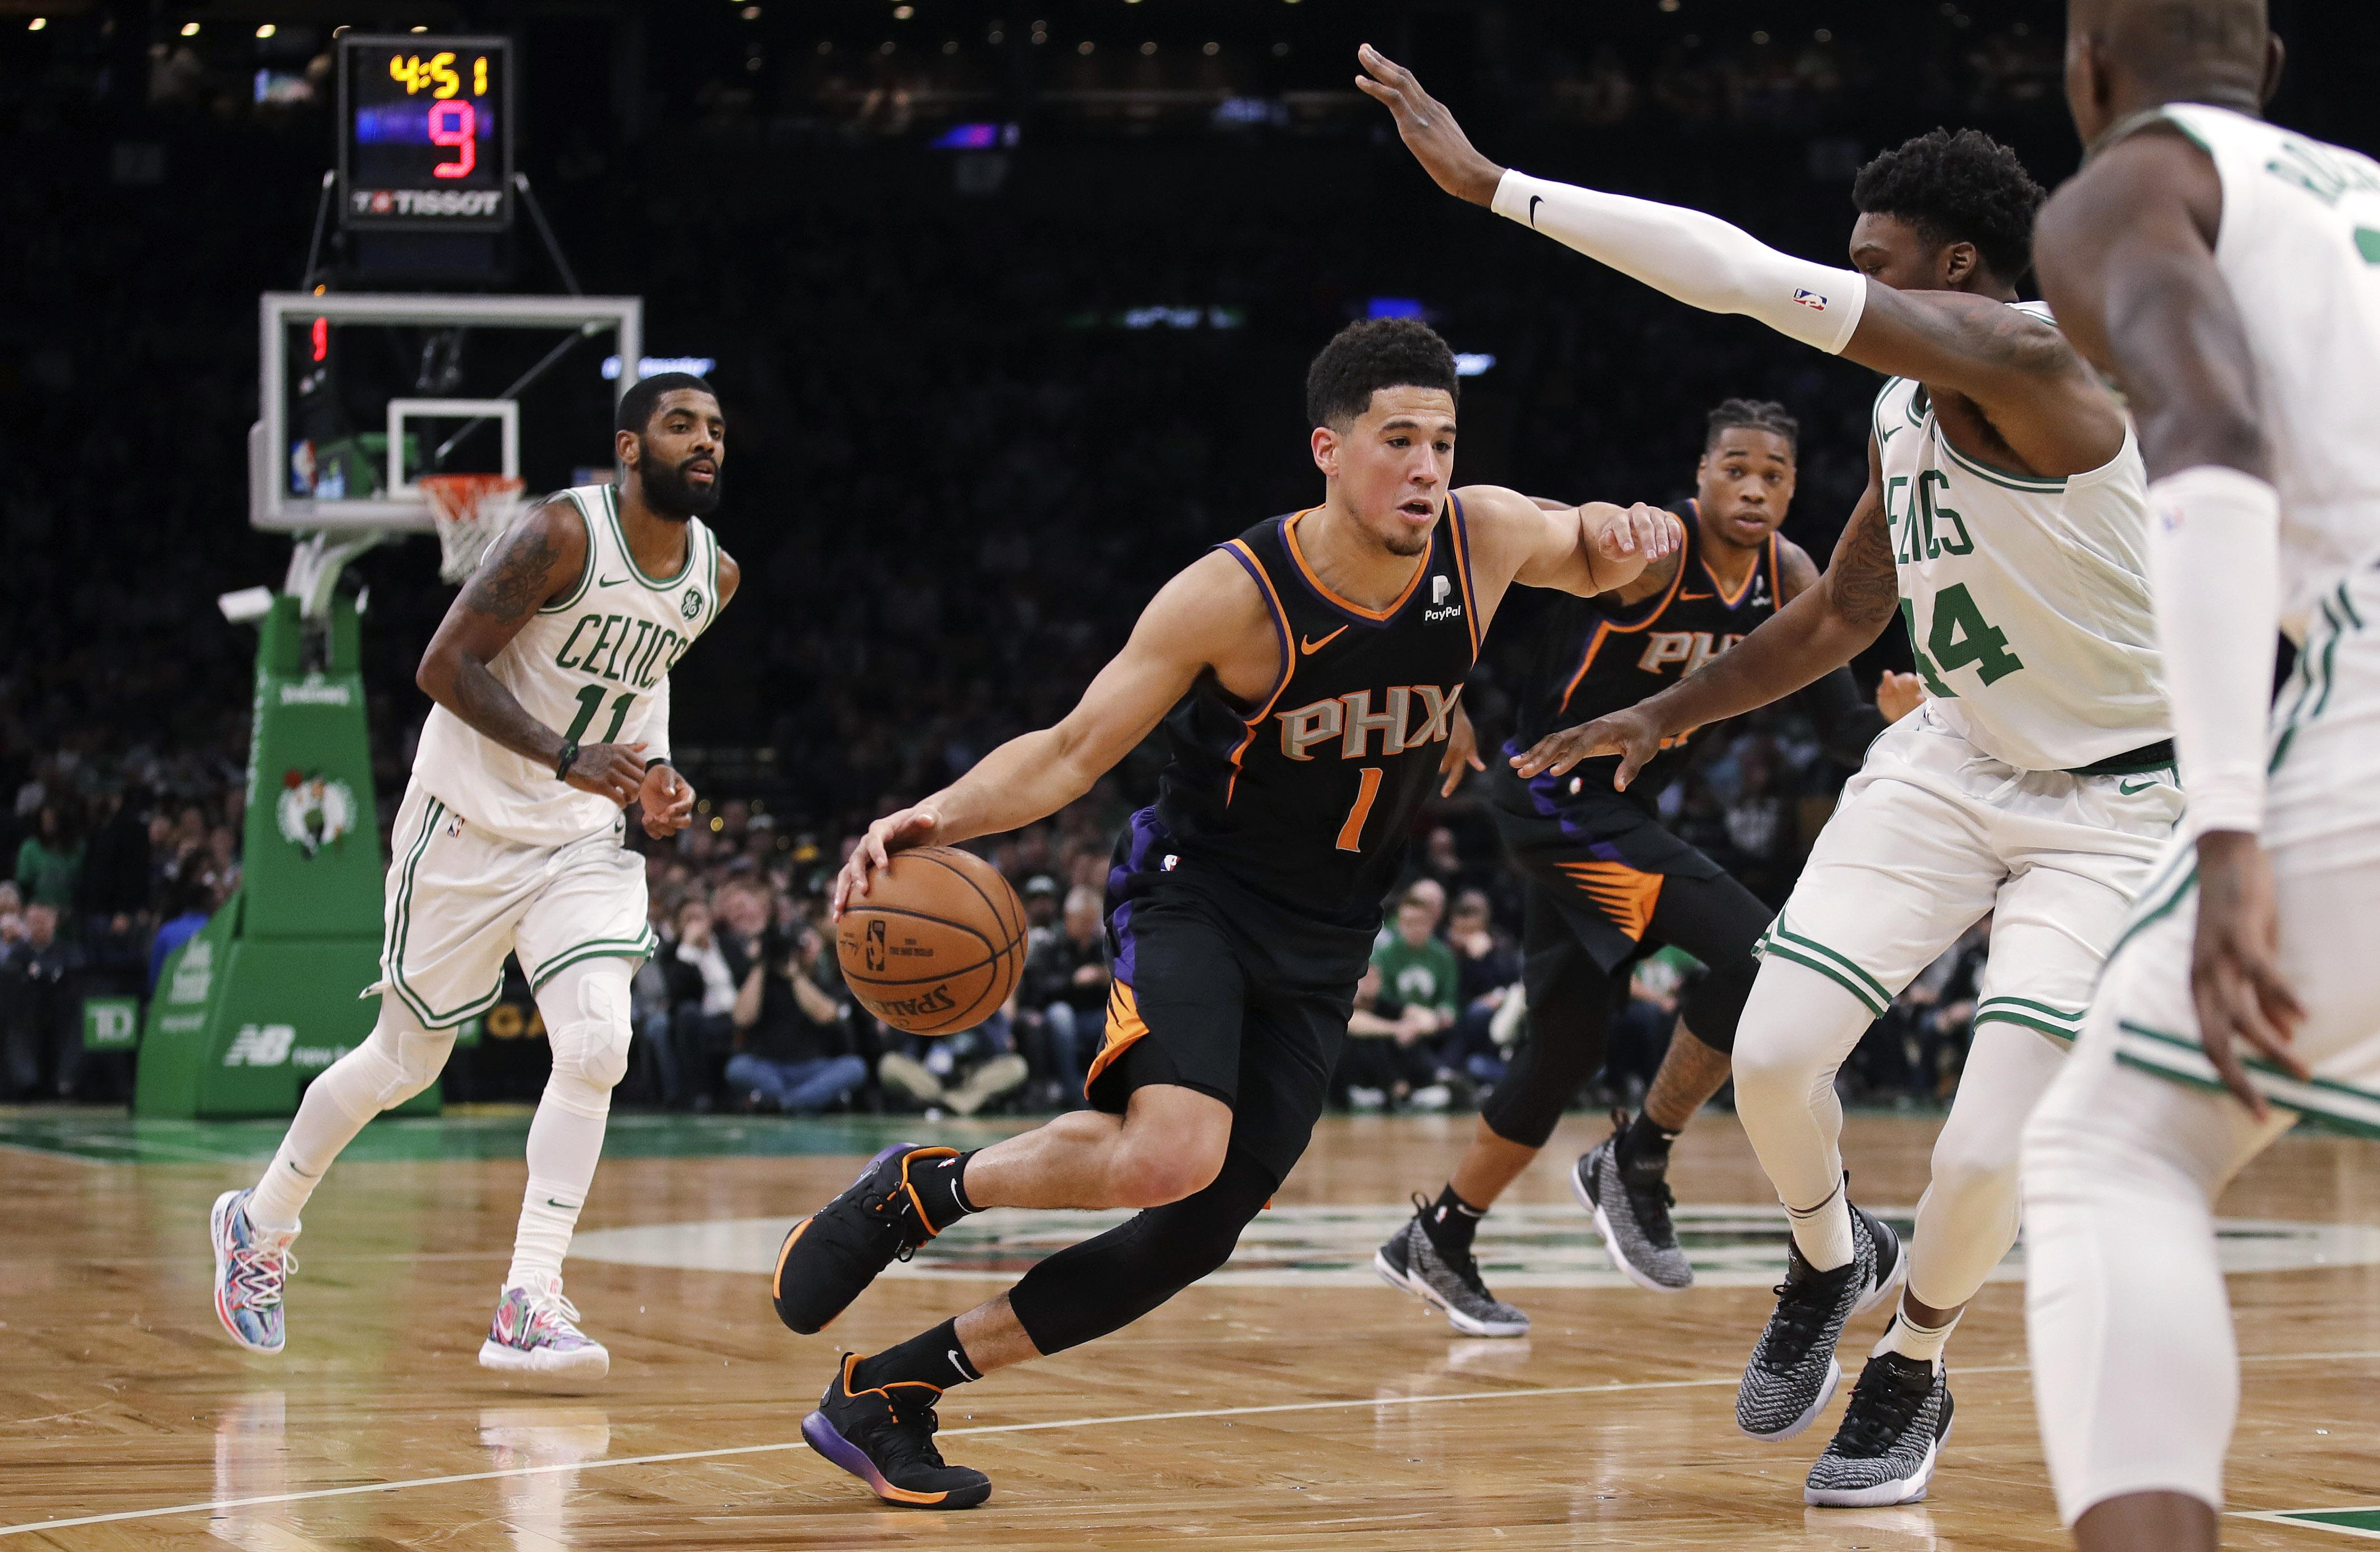 1bcee58be7c0 Phoenix Suns guard Devin Booker scored 25 points and handed out eight  assists in a 111